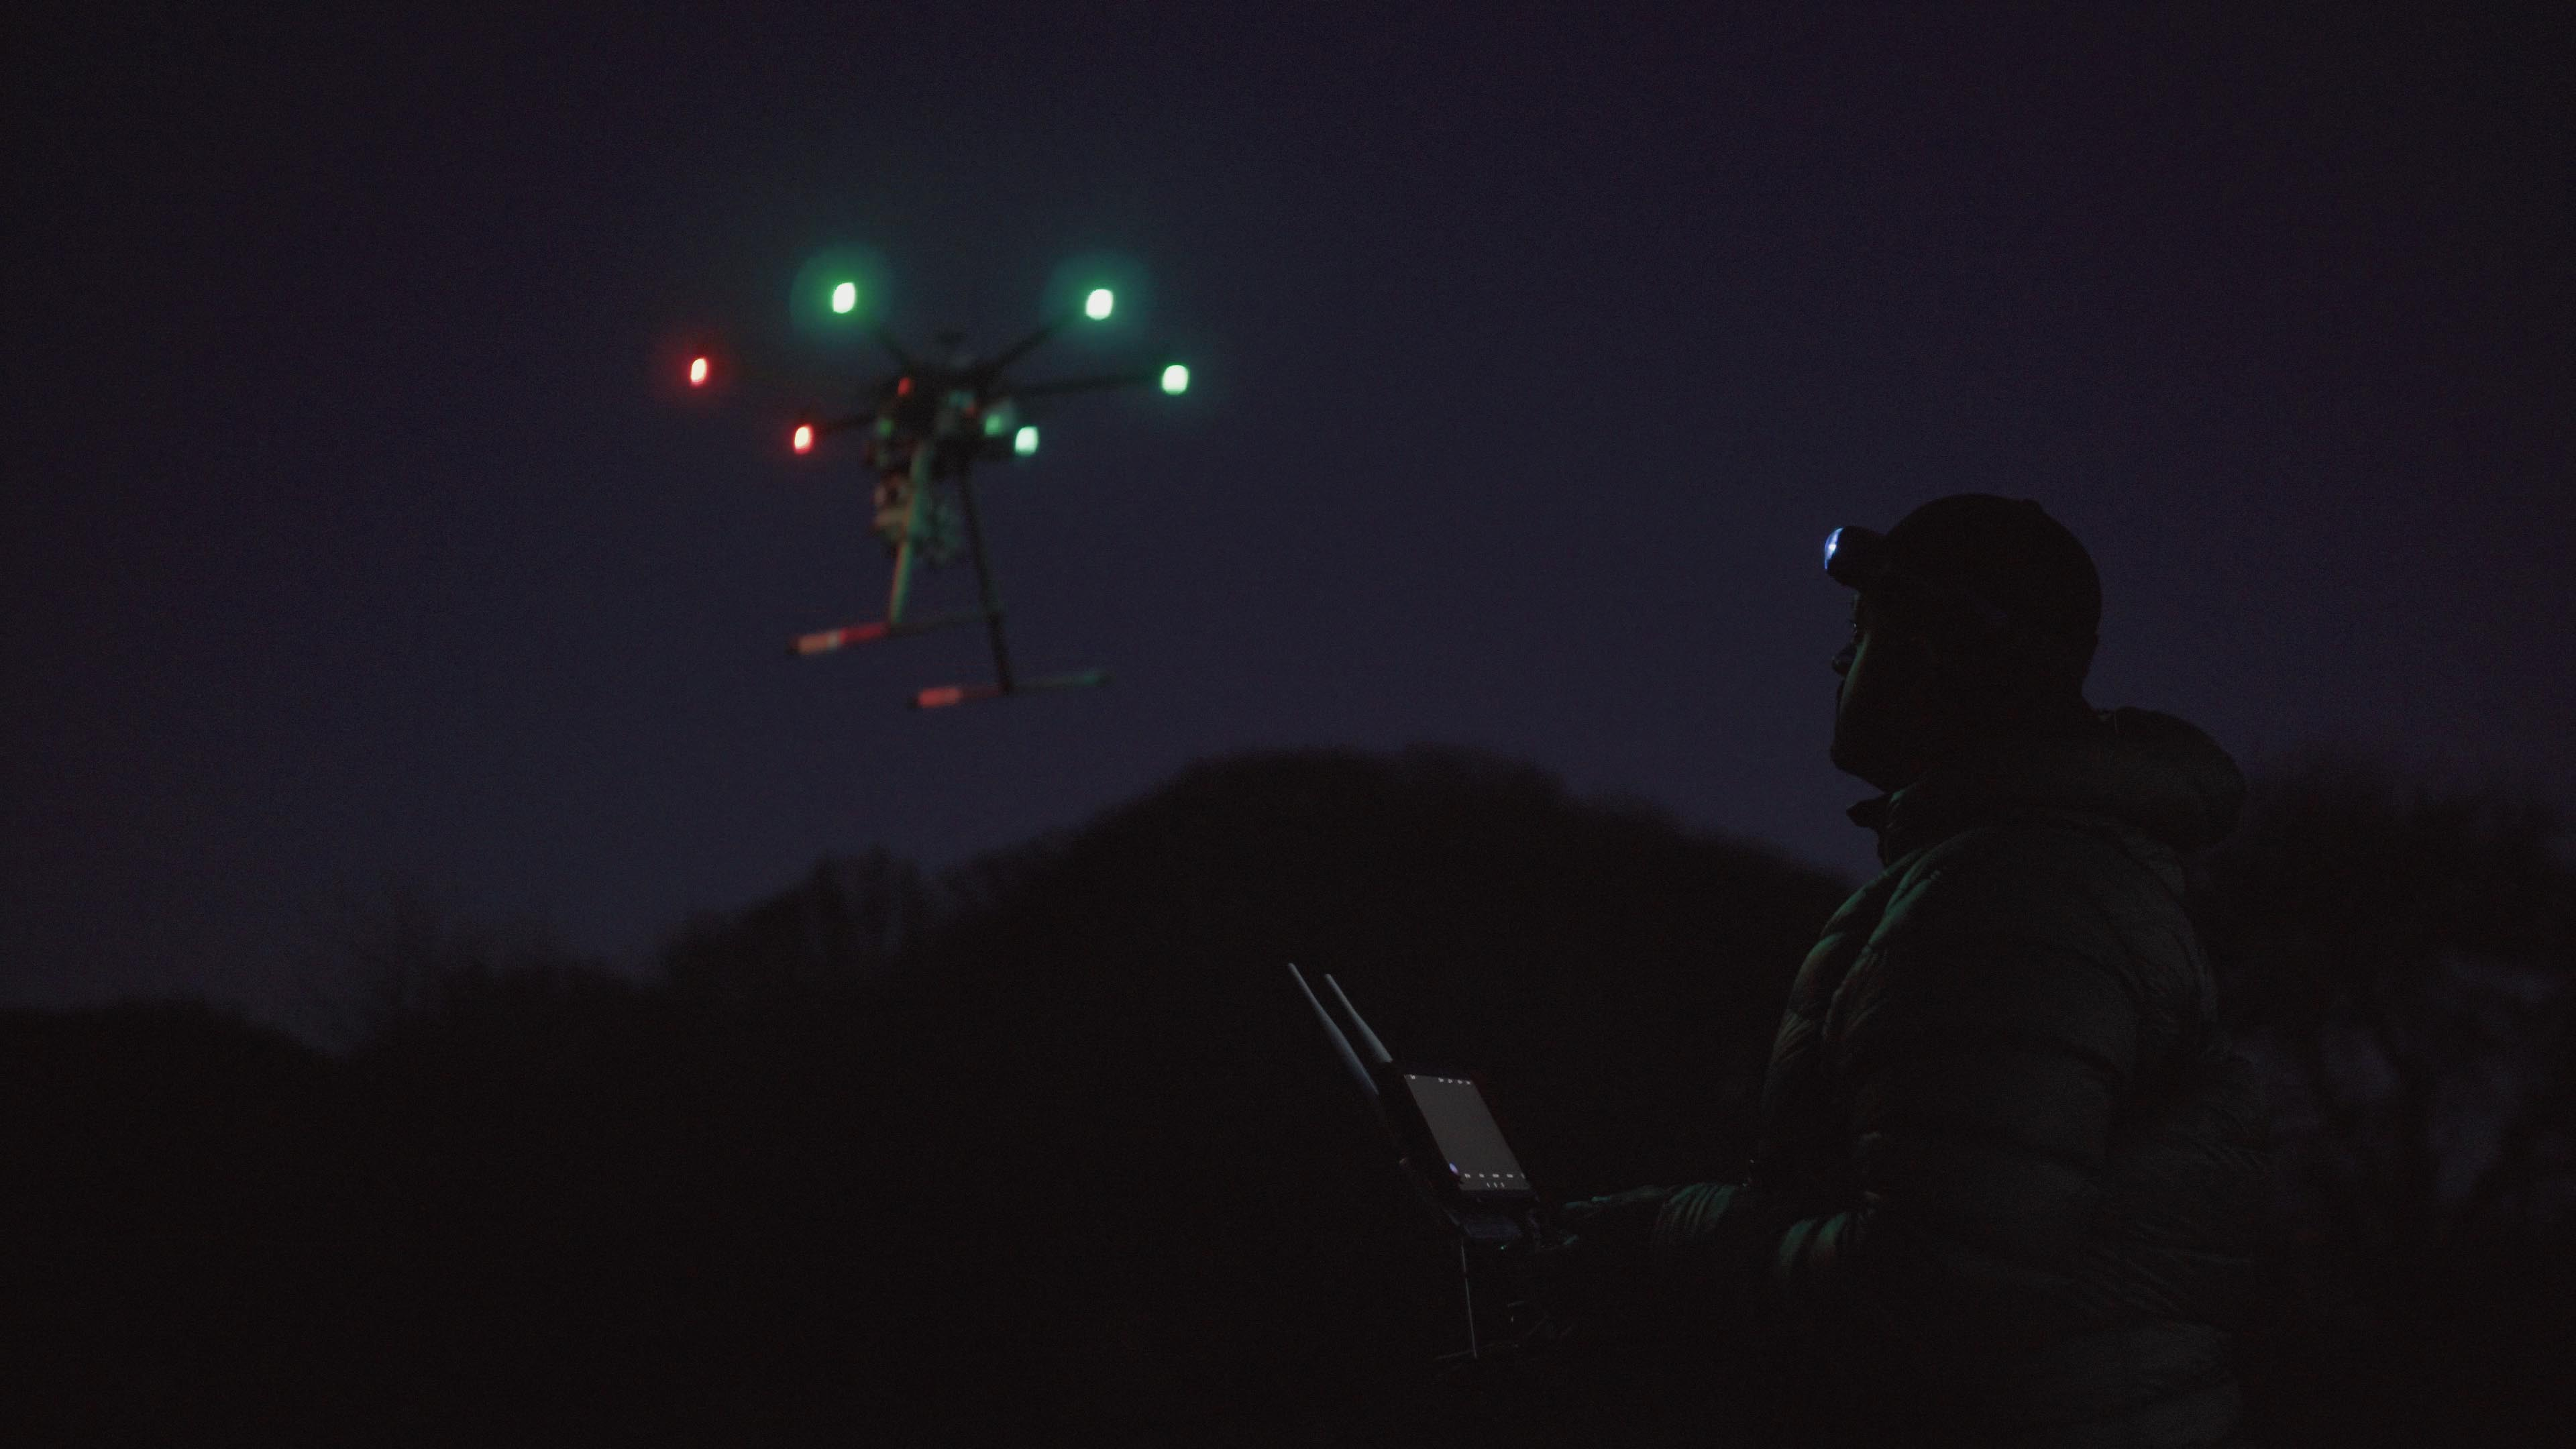 Professional drone pilot working on a dark morning with his S4 headlamp